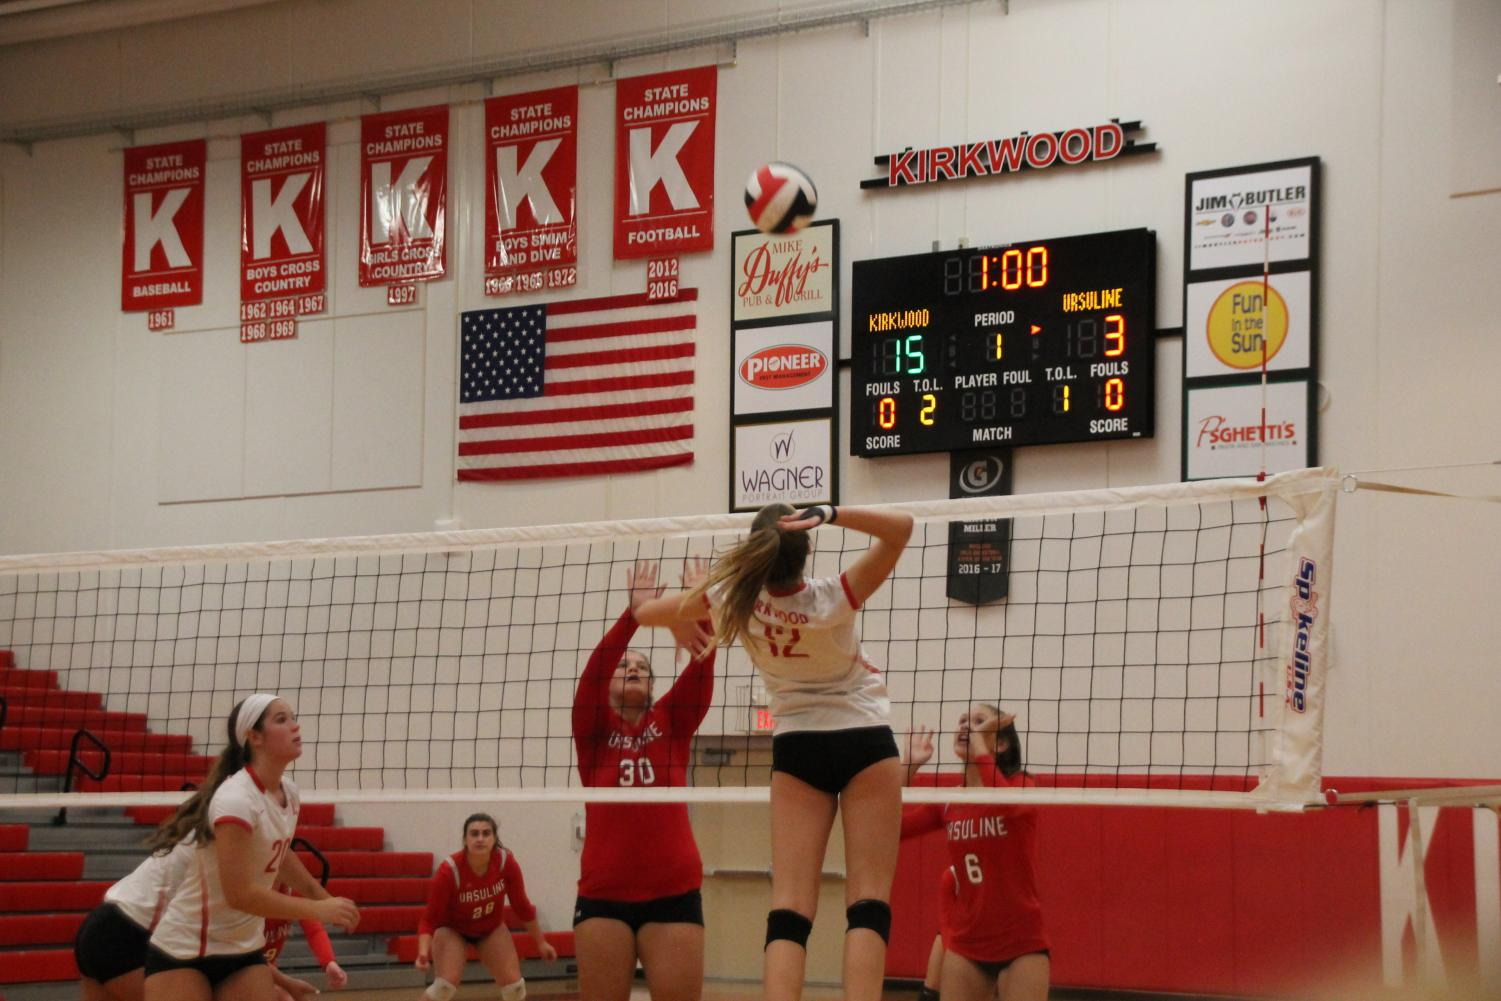 Audrey+Krus%2C+grade+10+spikes+ball+back+to+the+opposing+team.+